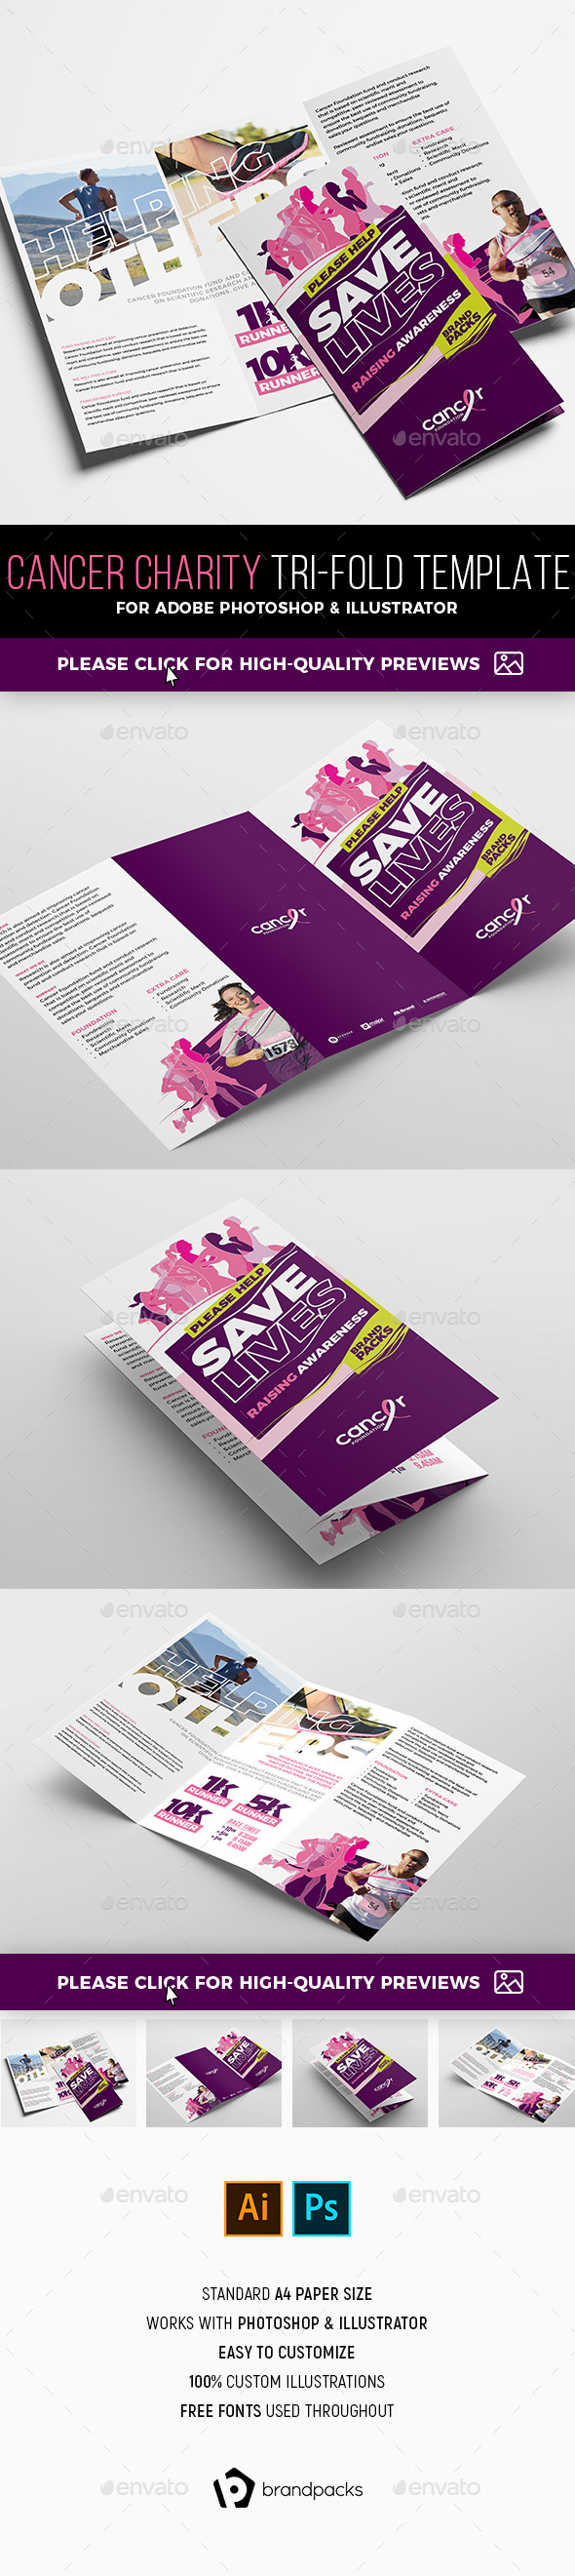 Cancer Benefit Tri-Fold Brochure Template - Corporate Brochures